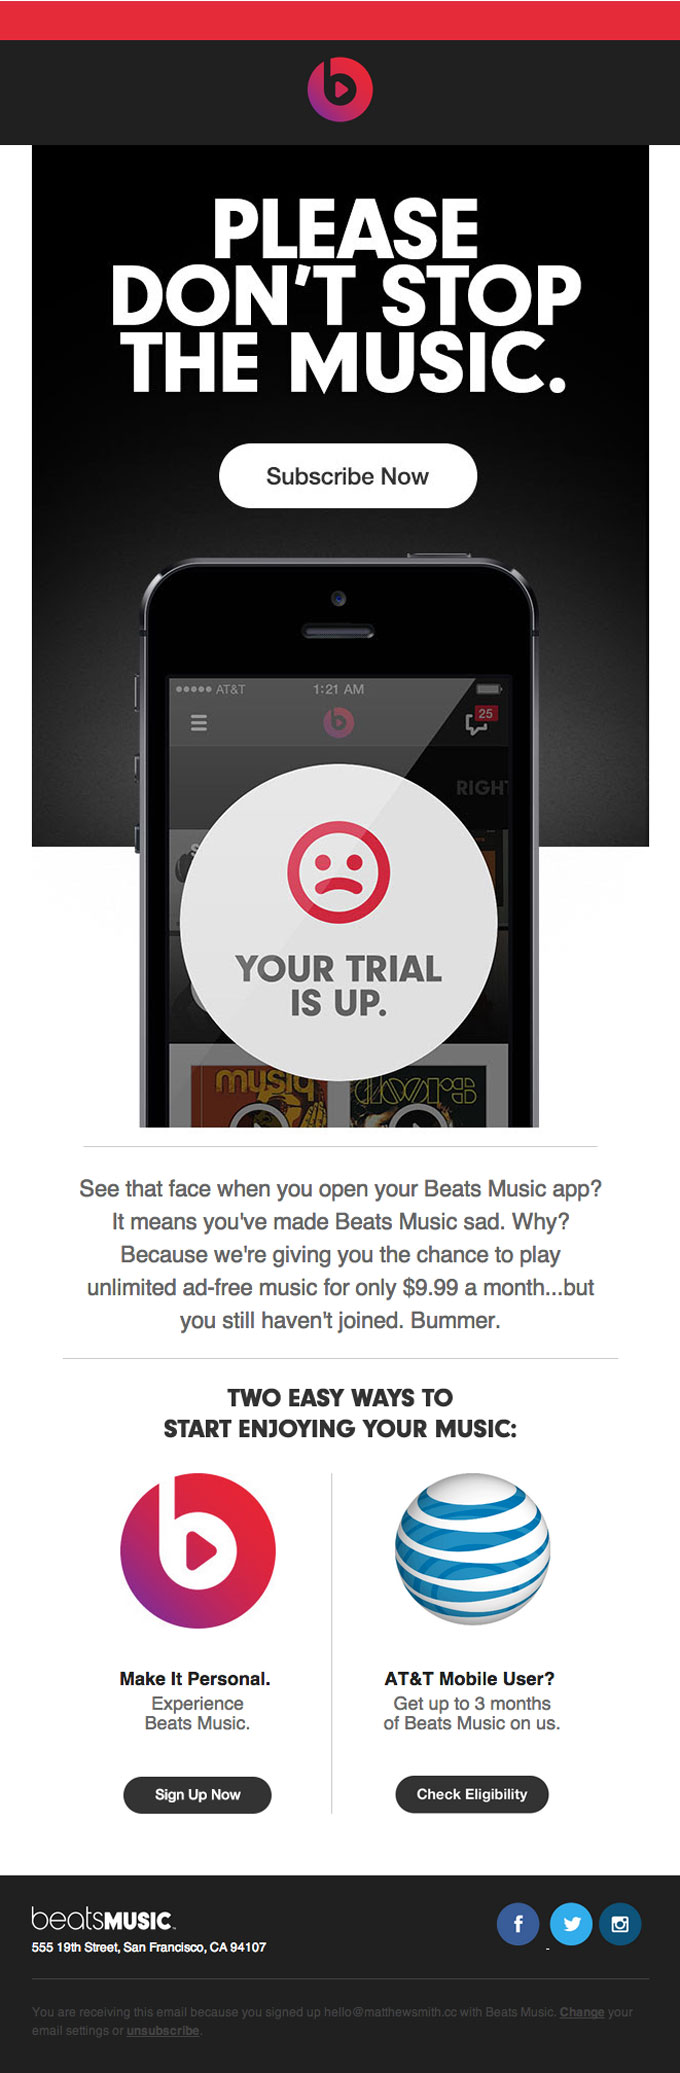 Customer-Retention-Email-Design-from-Beats-Music.jpg